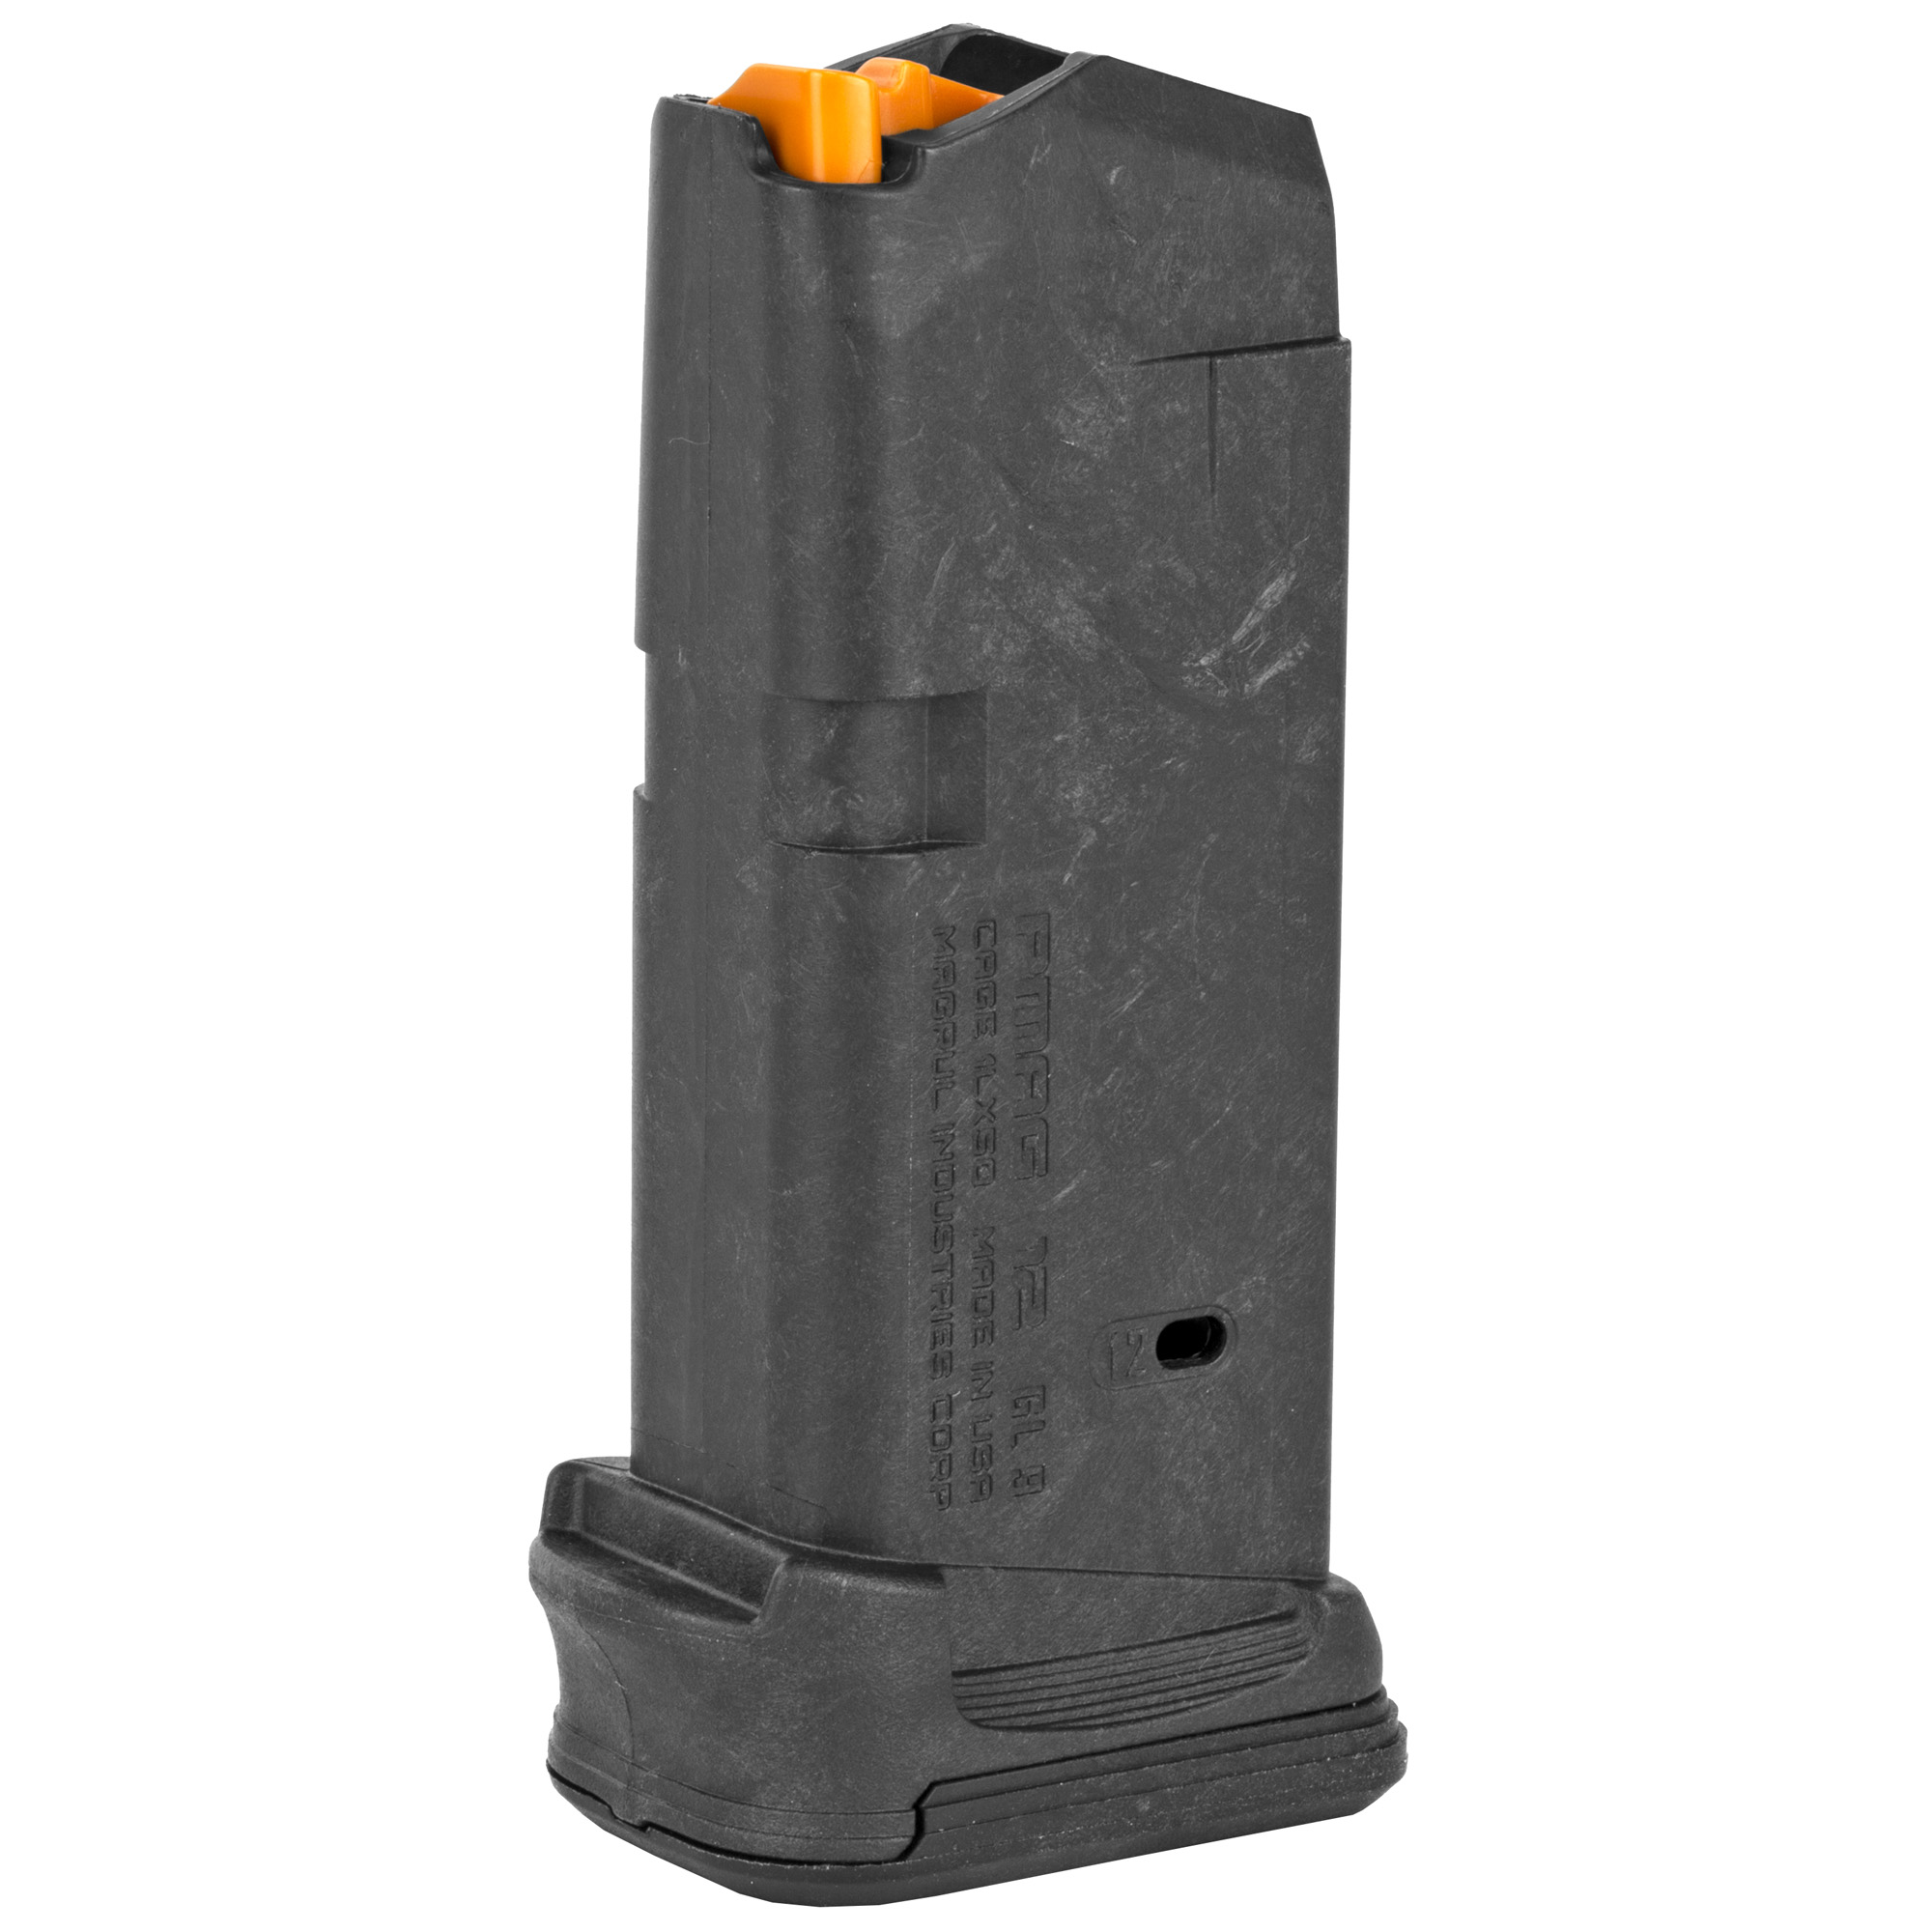 """Adding capacity and control with a minimal footprint"""" the PMAG 12 GL9 is a 12-round magazine for the Glock 26. Building on the proven PMAG 17 GL9 and PMAG 15 GL9"""" subcompact Glock users gain two more rounds of capacity while adding a built-in finger groove for a full grip. Featuring grasping grooves for easy retrieval and an easily removable floor plate with paint-pen marking matrix"""" the PMAG 12 GL9 brings duty capacity to subcompact convenience."""